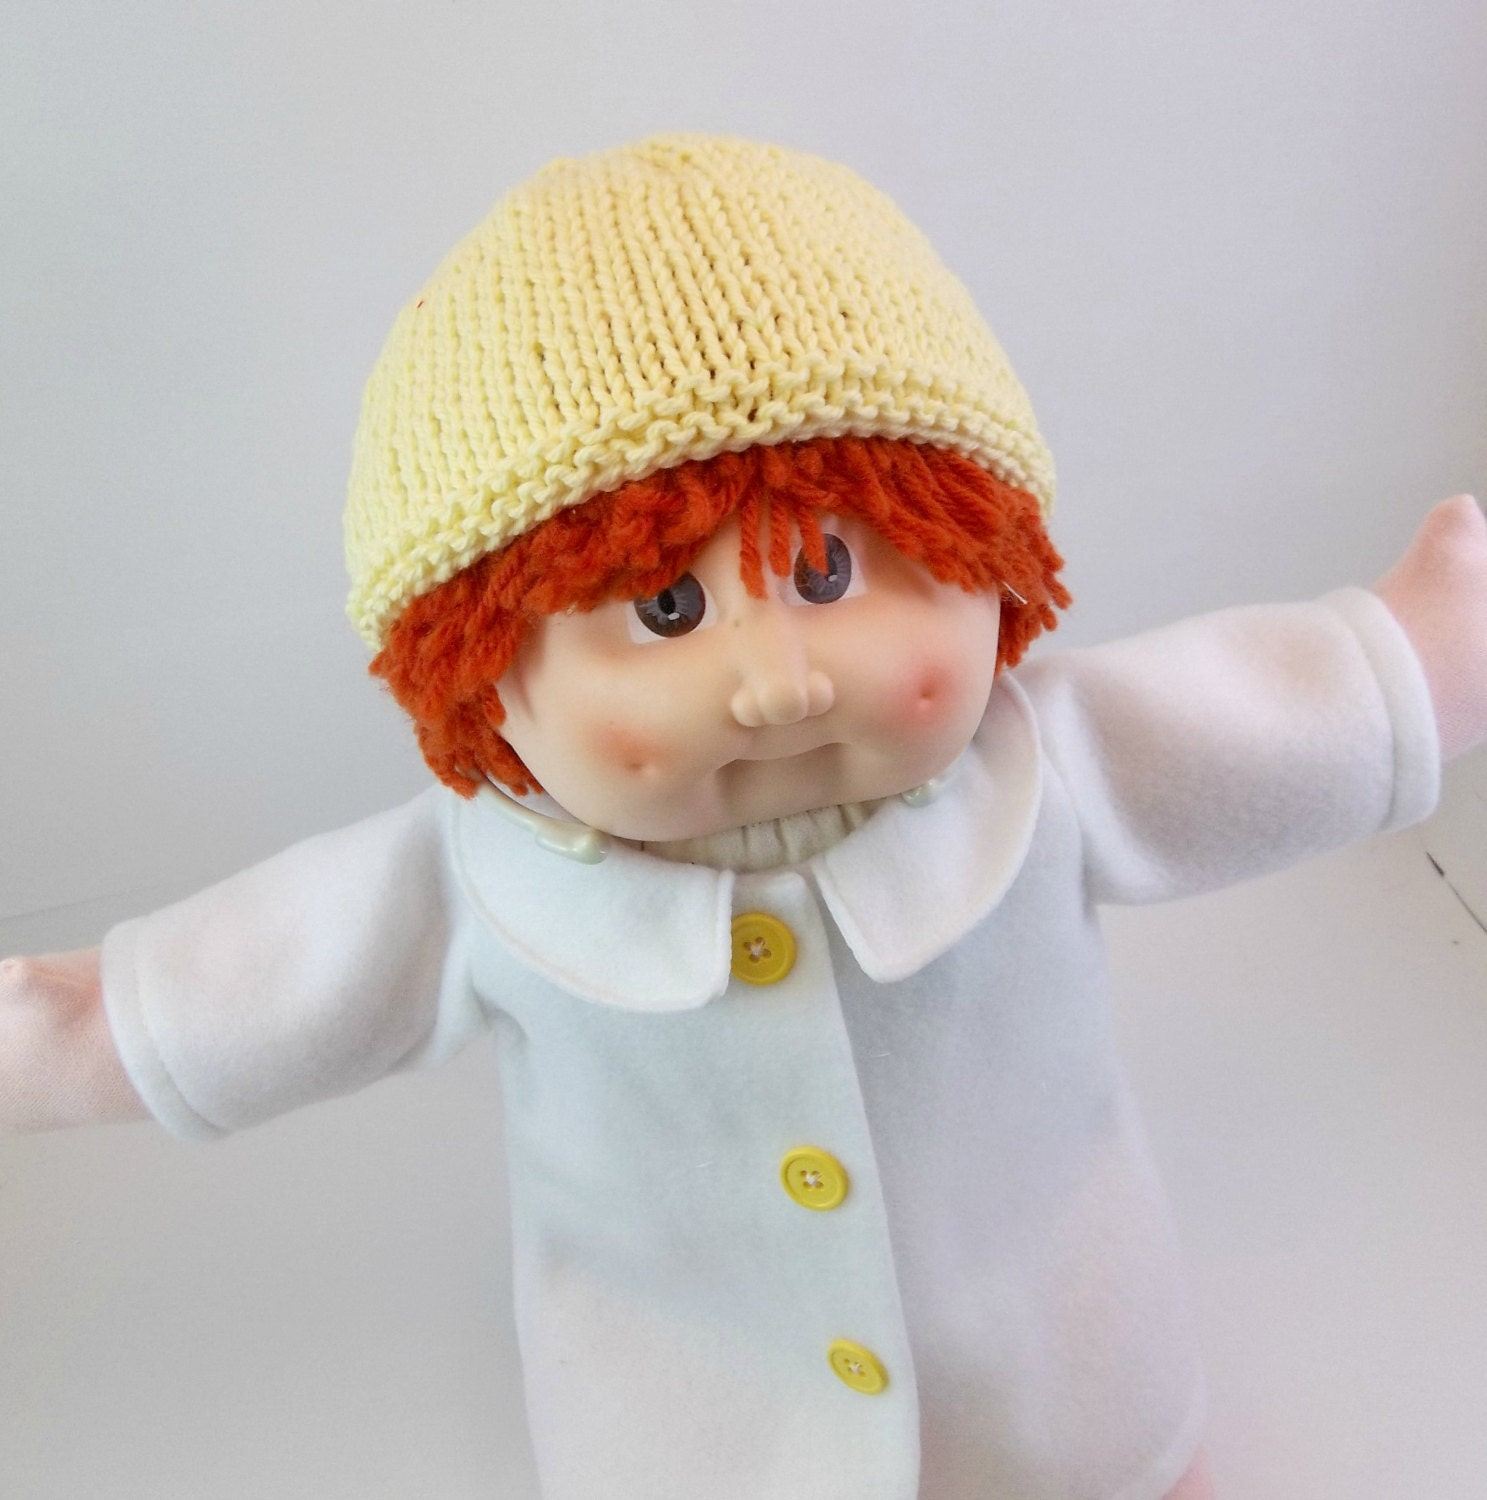 Knitting Pattern For Cabbage Patch Hat : White Fleece Coat and Yellow Knit Hat for Cabbage Patch